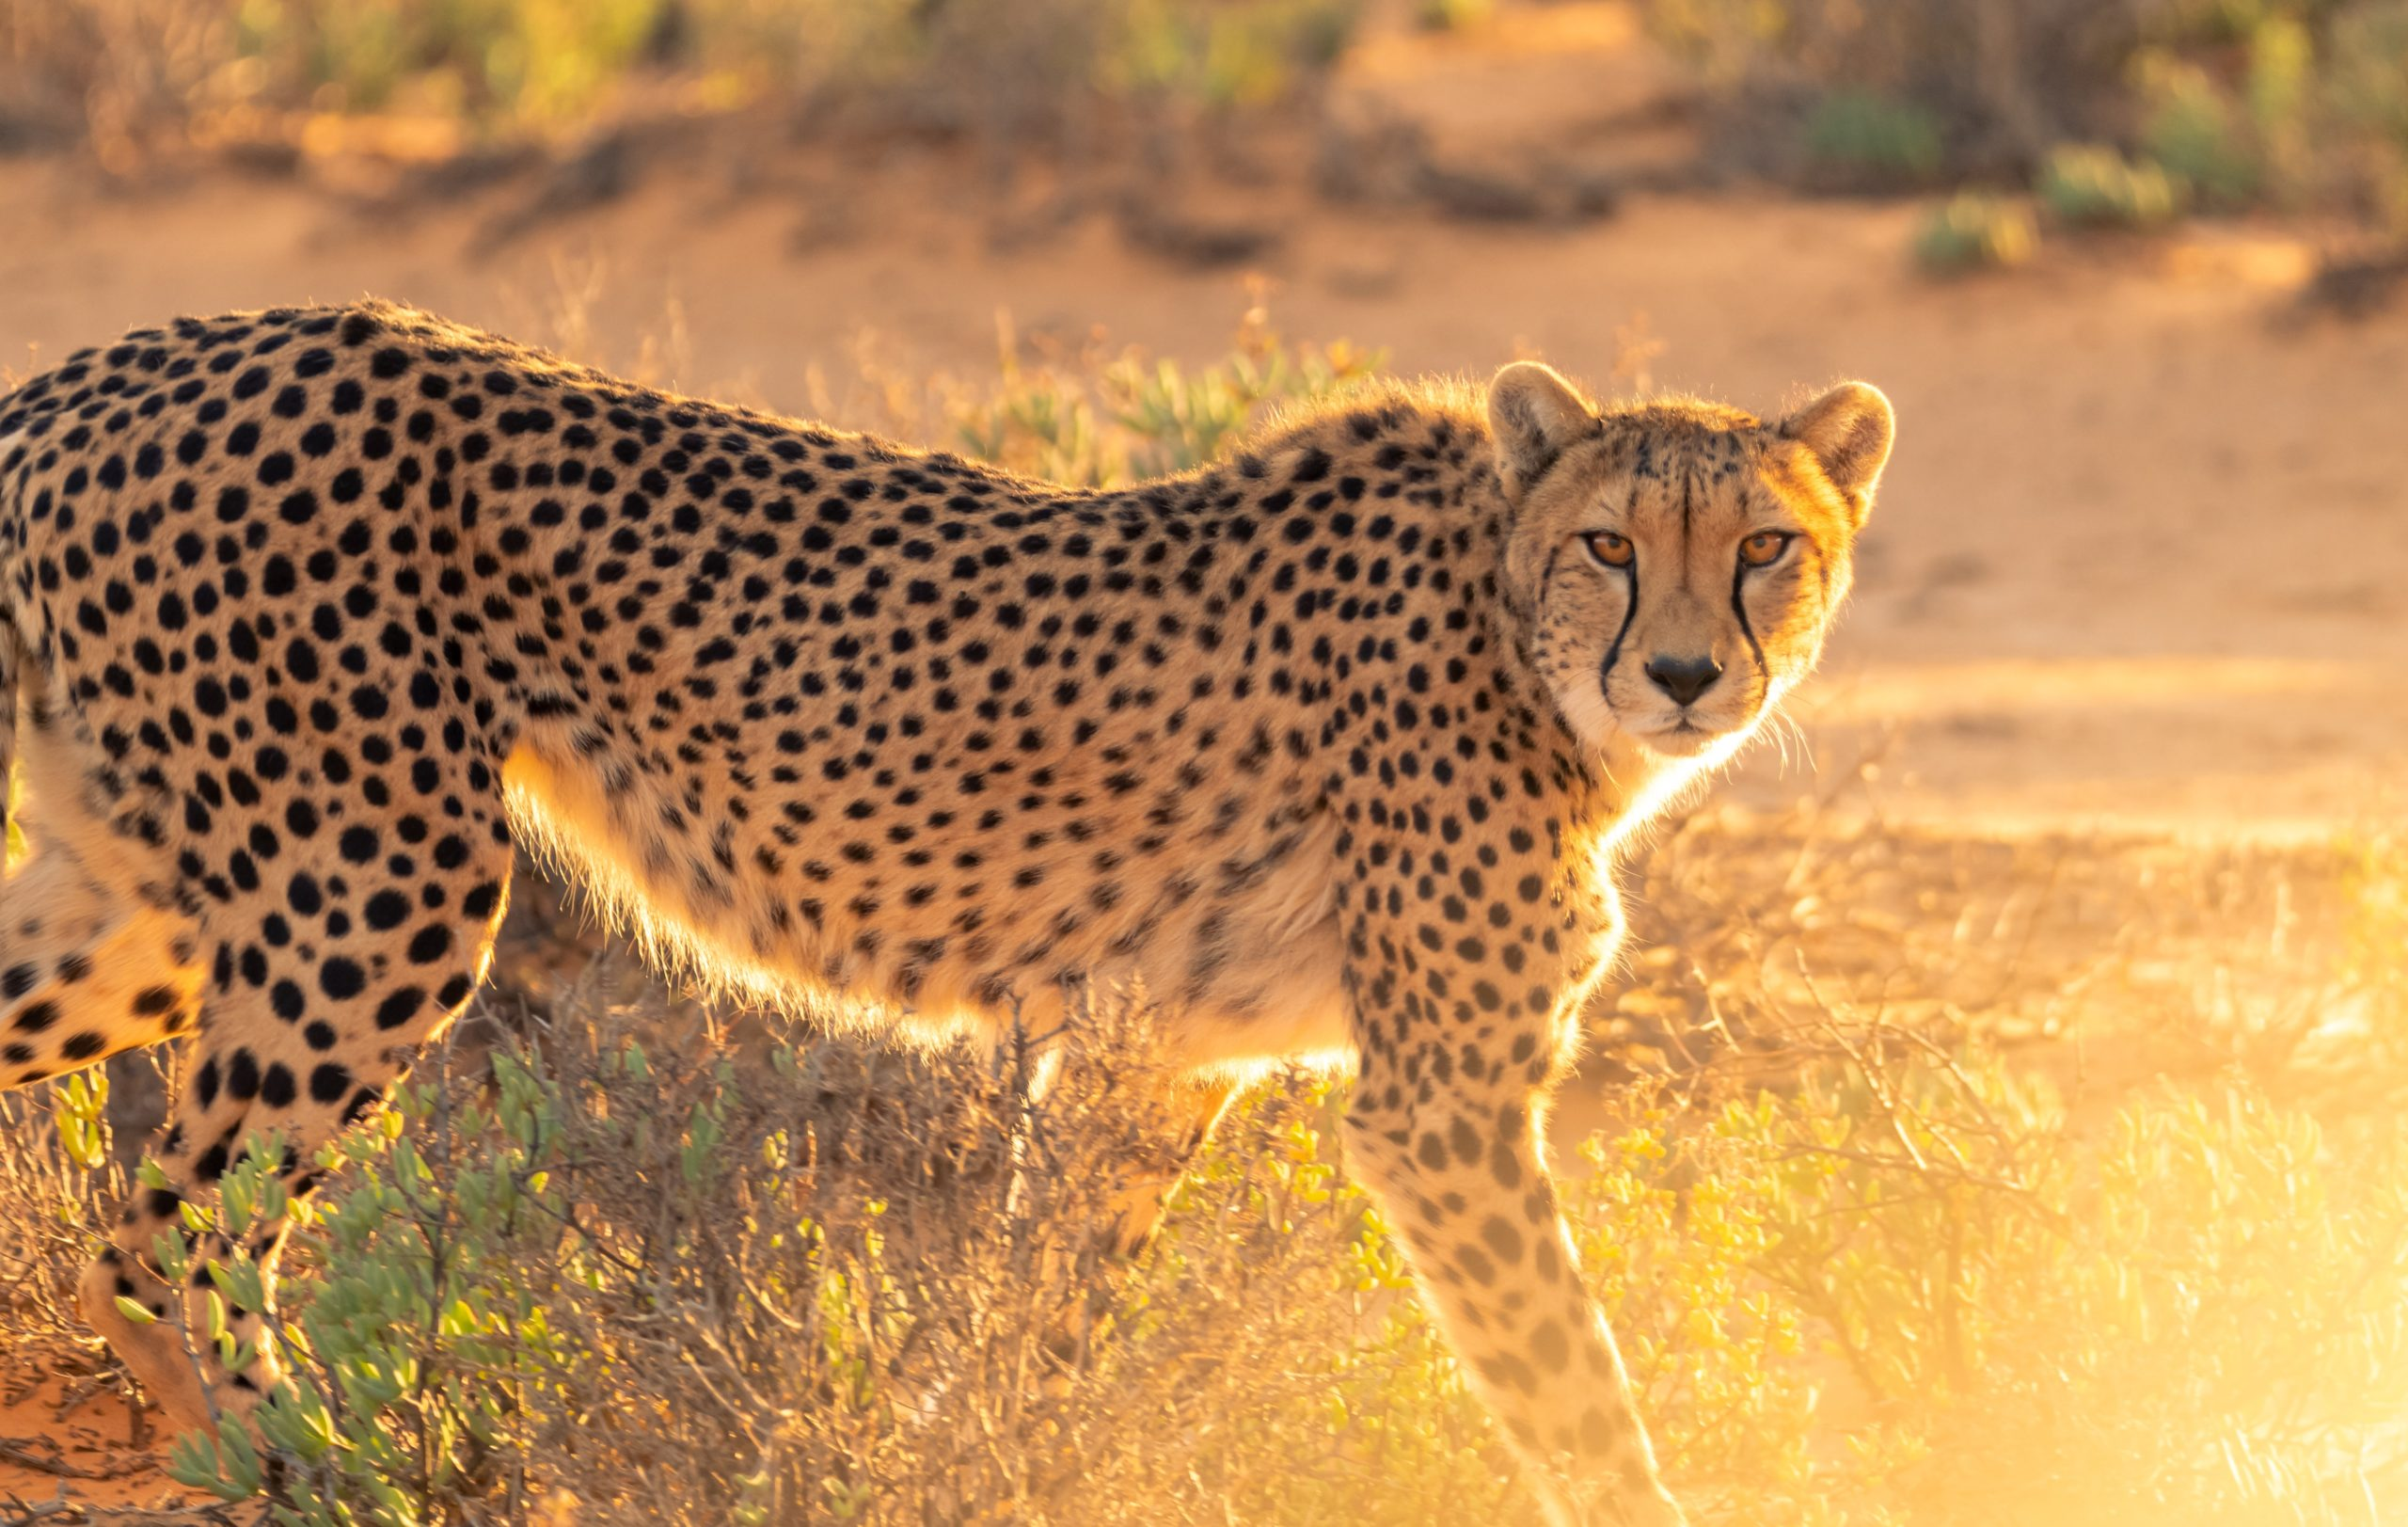 10 Curiosities About The Giant Cheetah